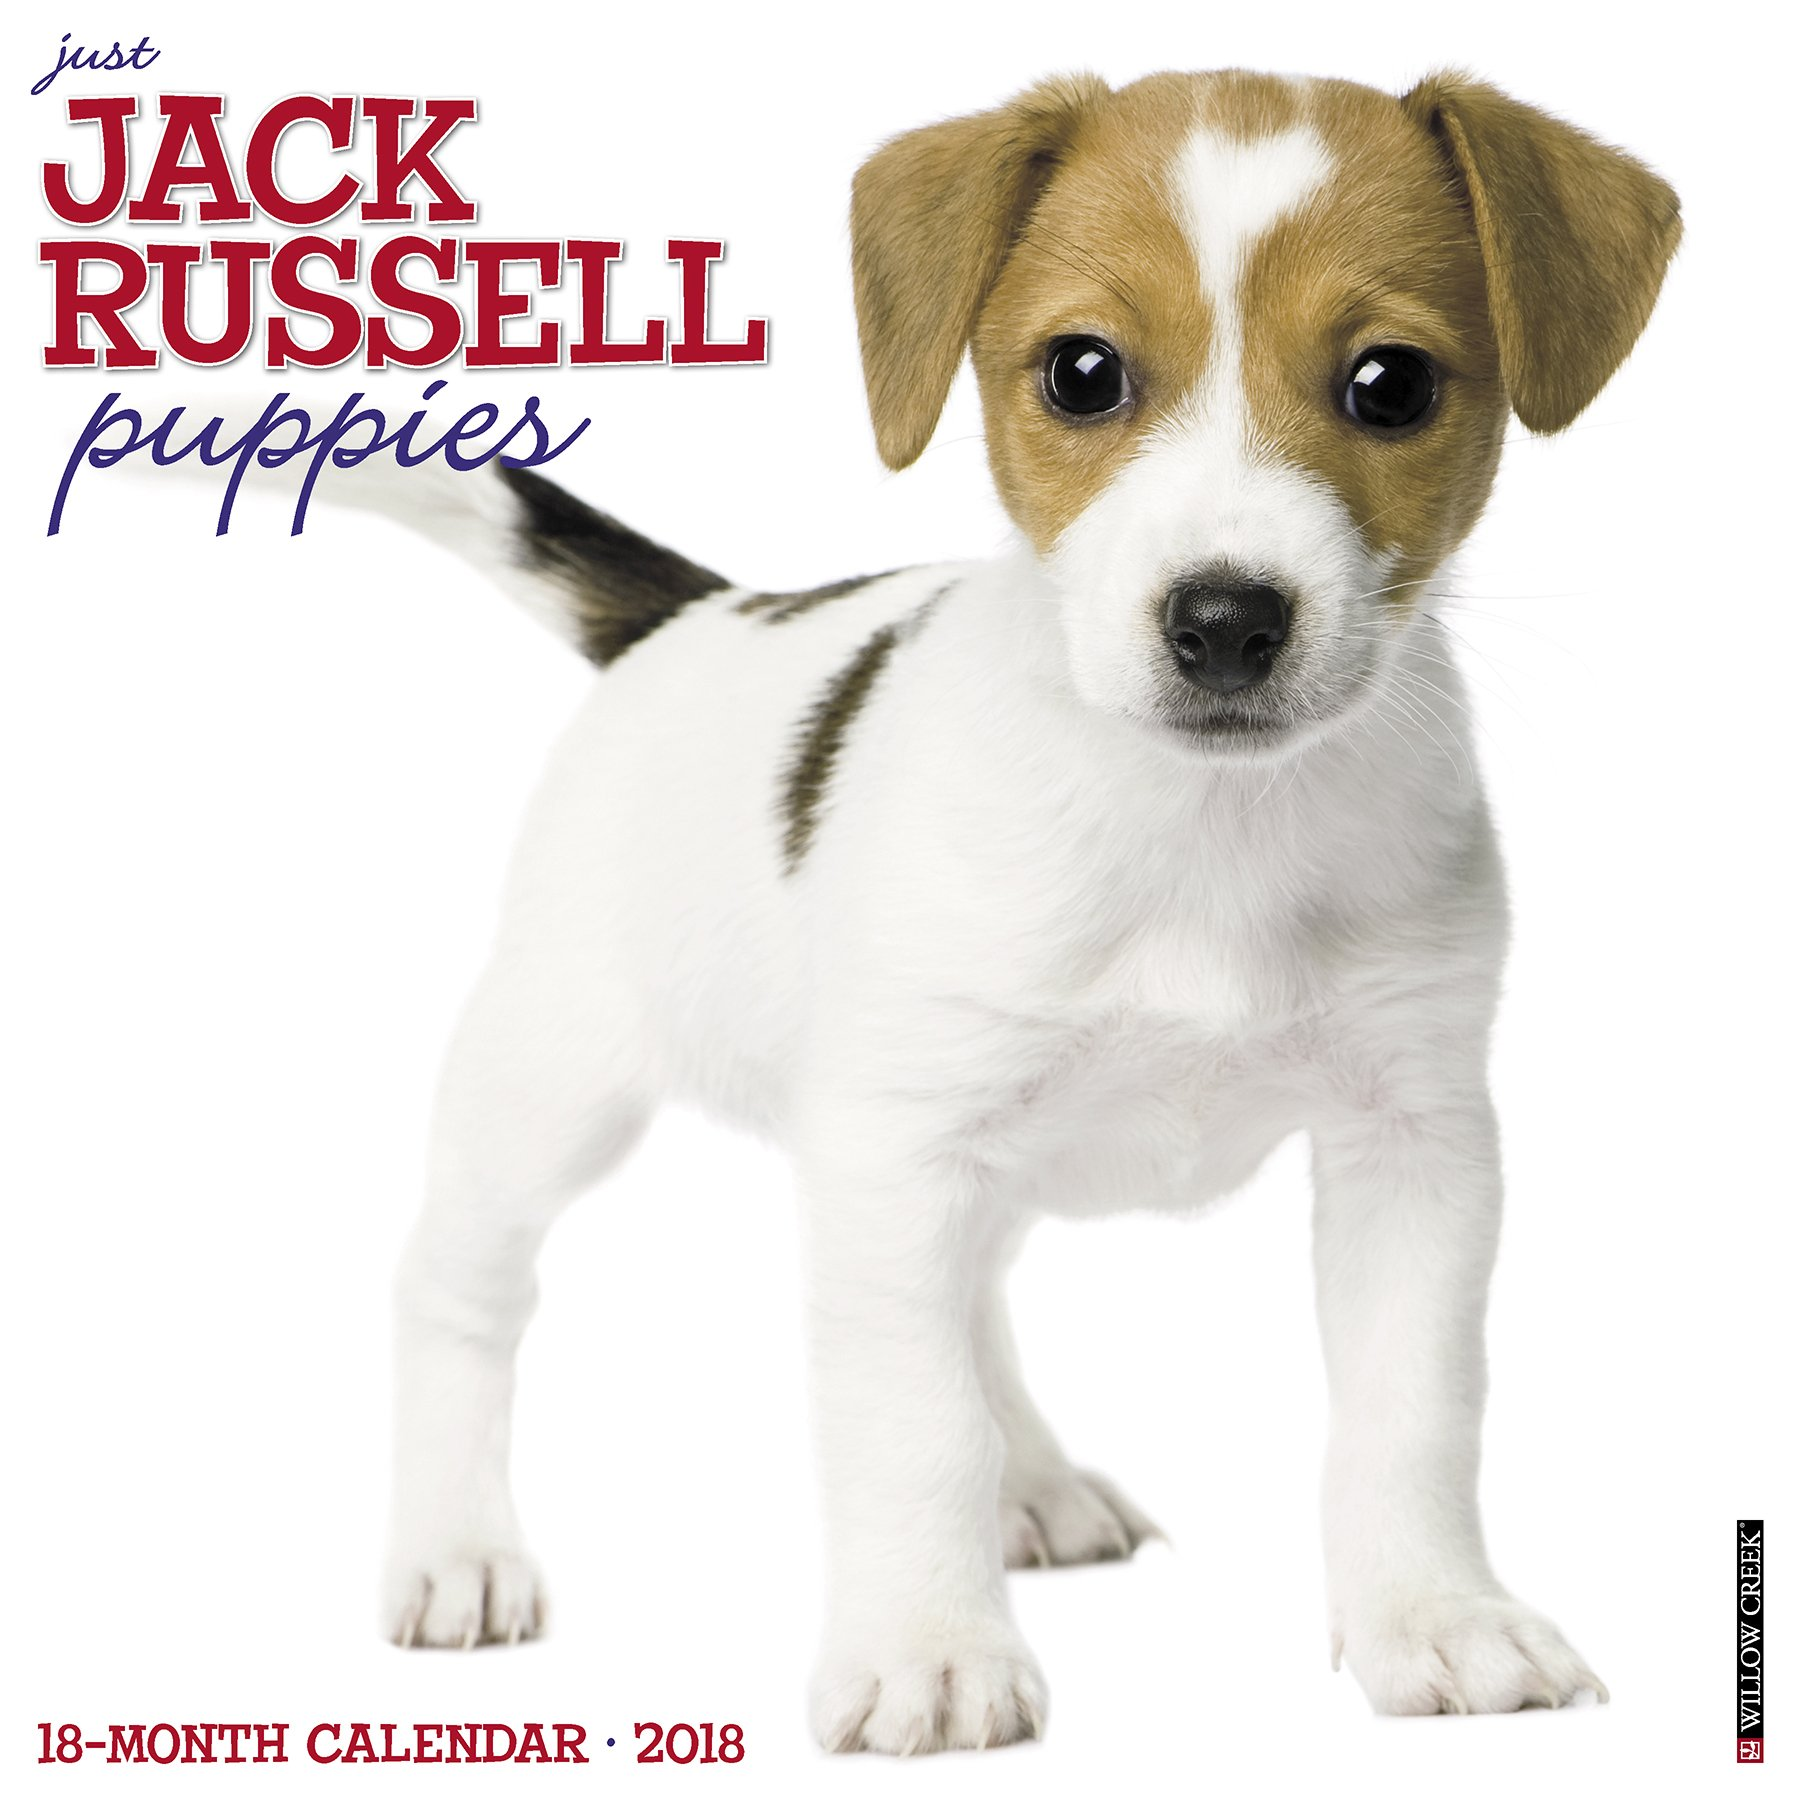 amazon just jack russell puppies 2018 calendar willow creek